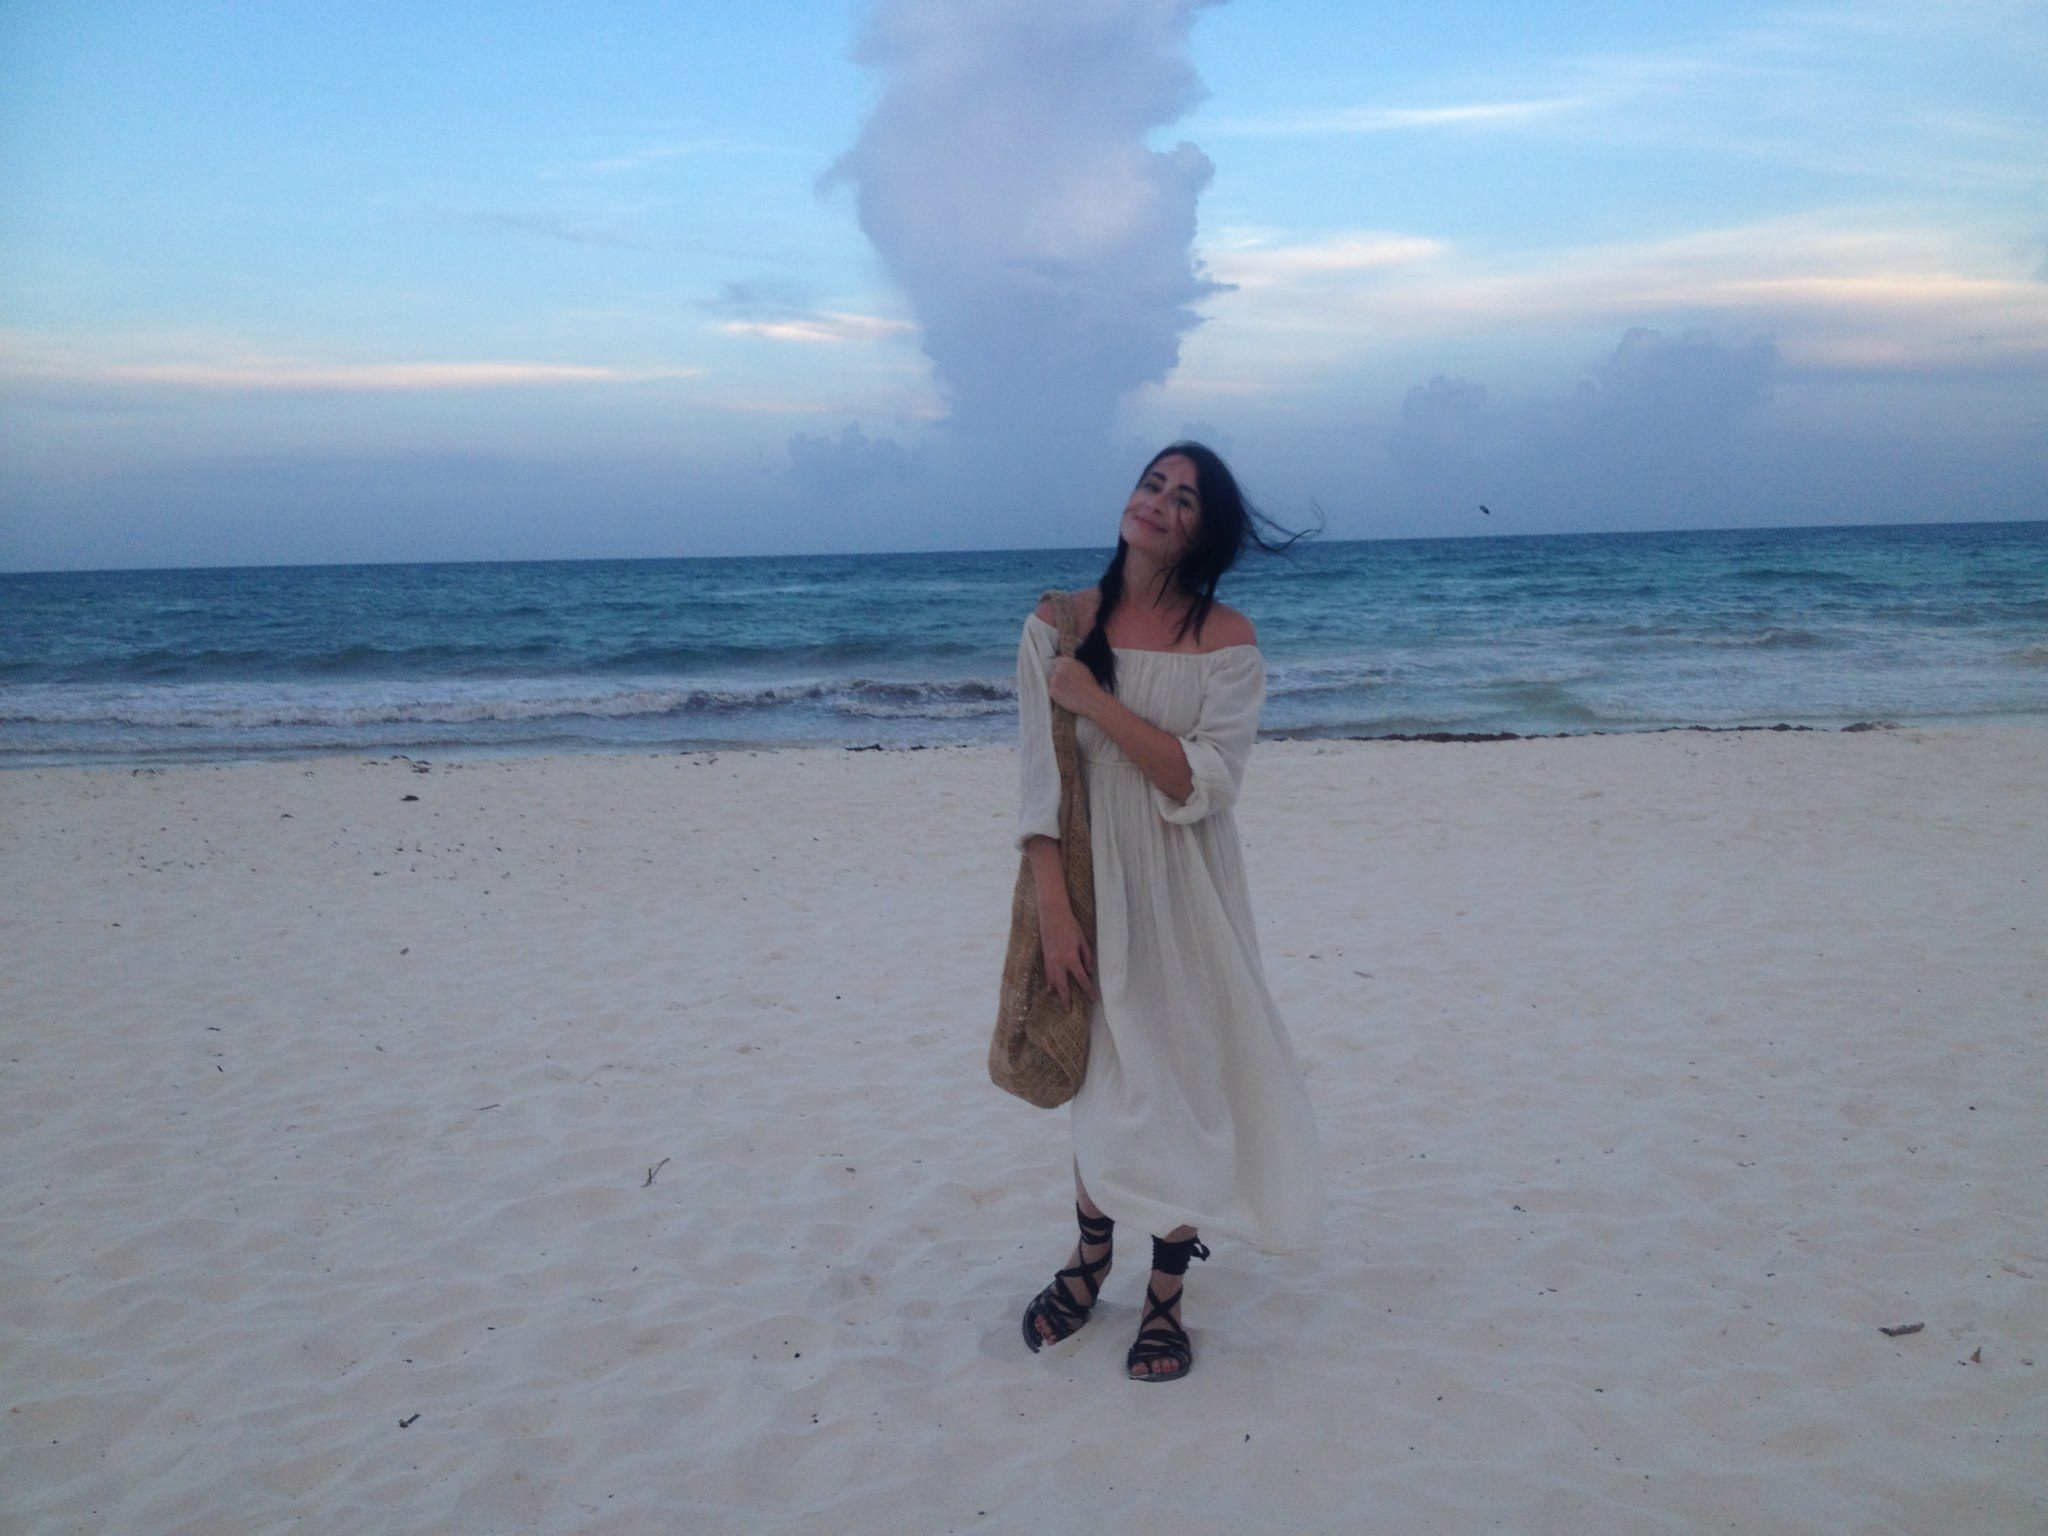 On actual vacation, in Tulum last year.